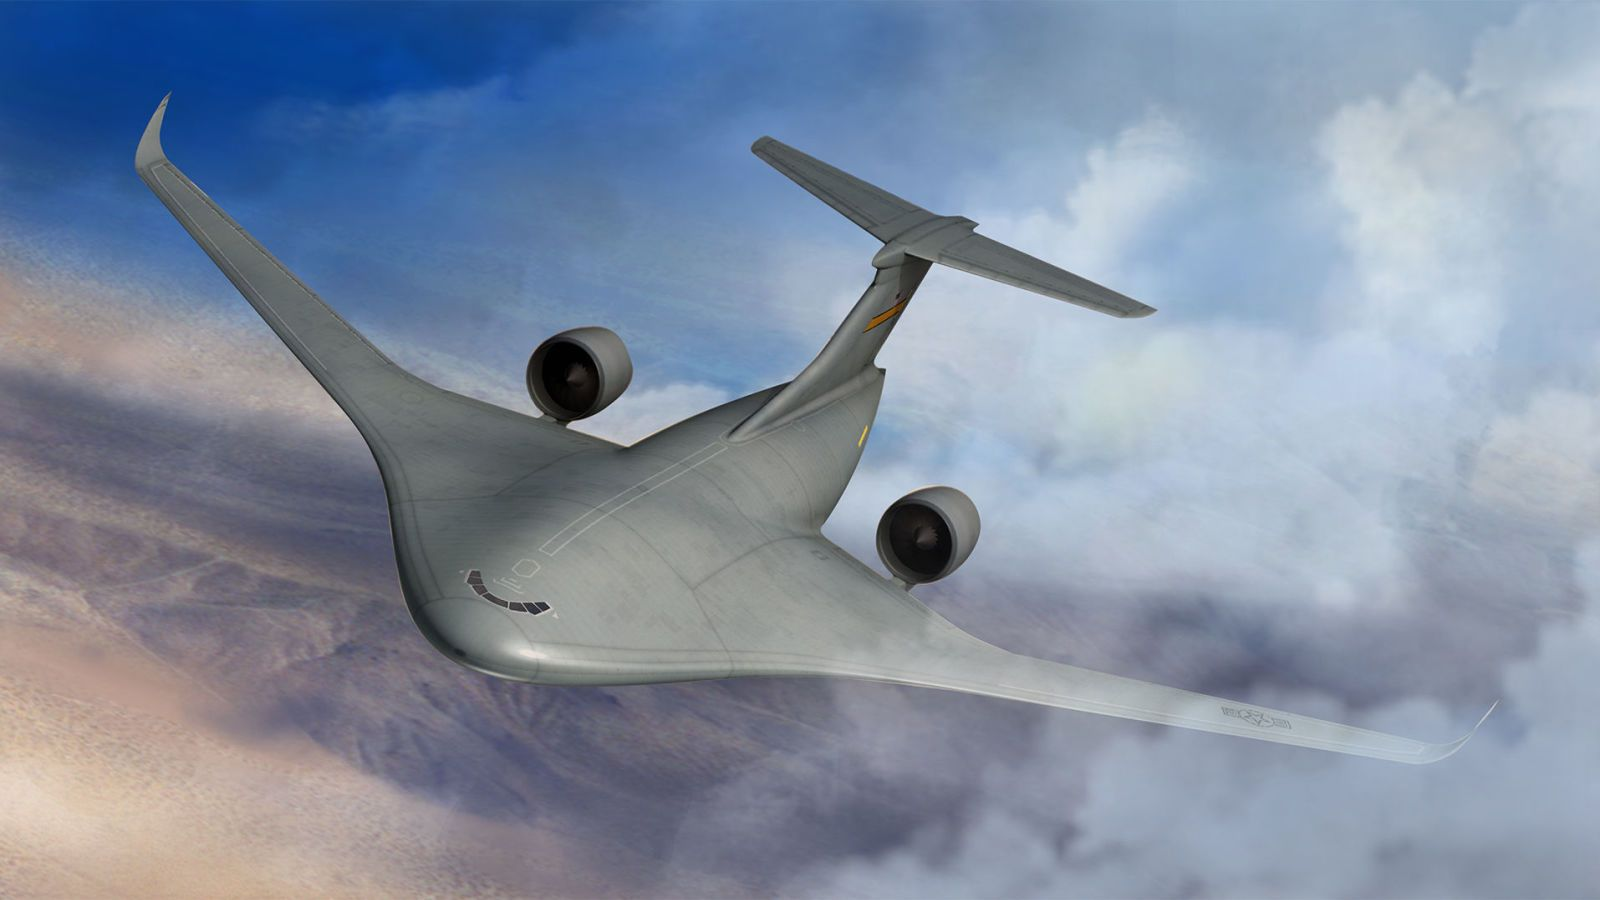 Lockheed's Hybrid Wing Body Plane Will Fly This Year, in Model Form